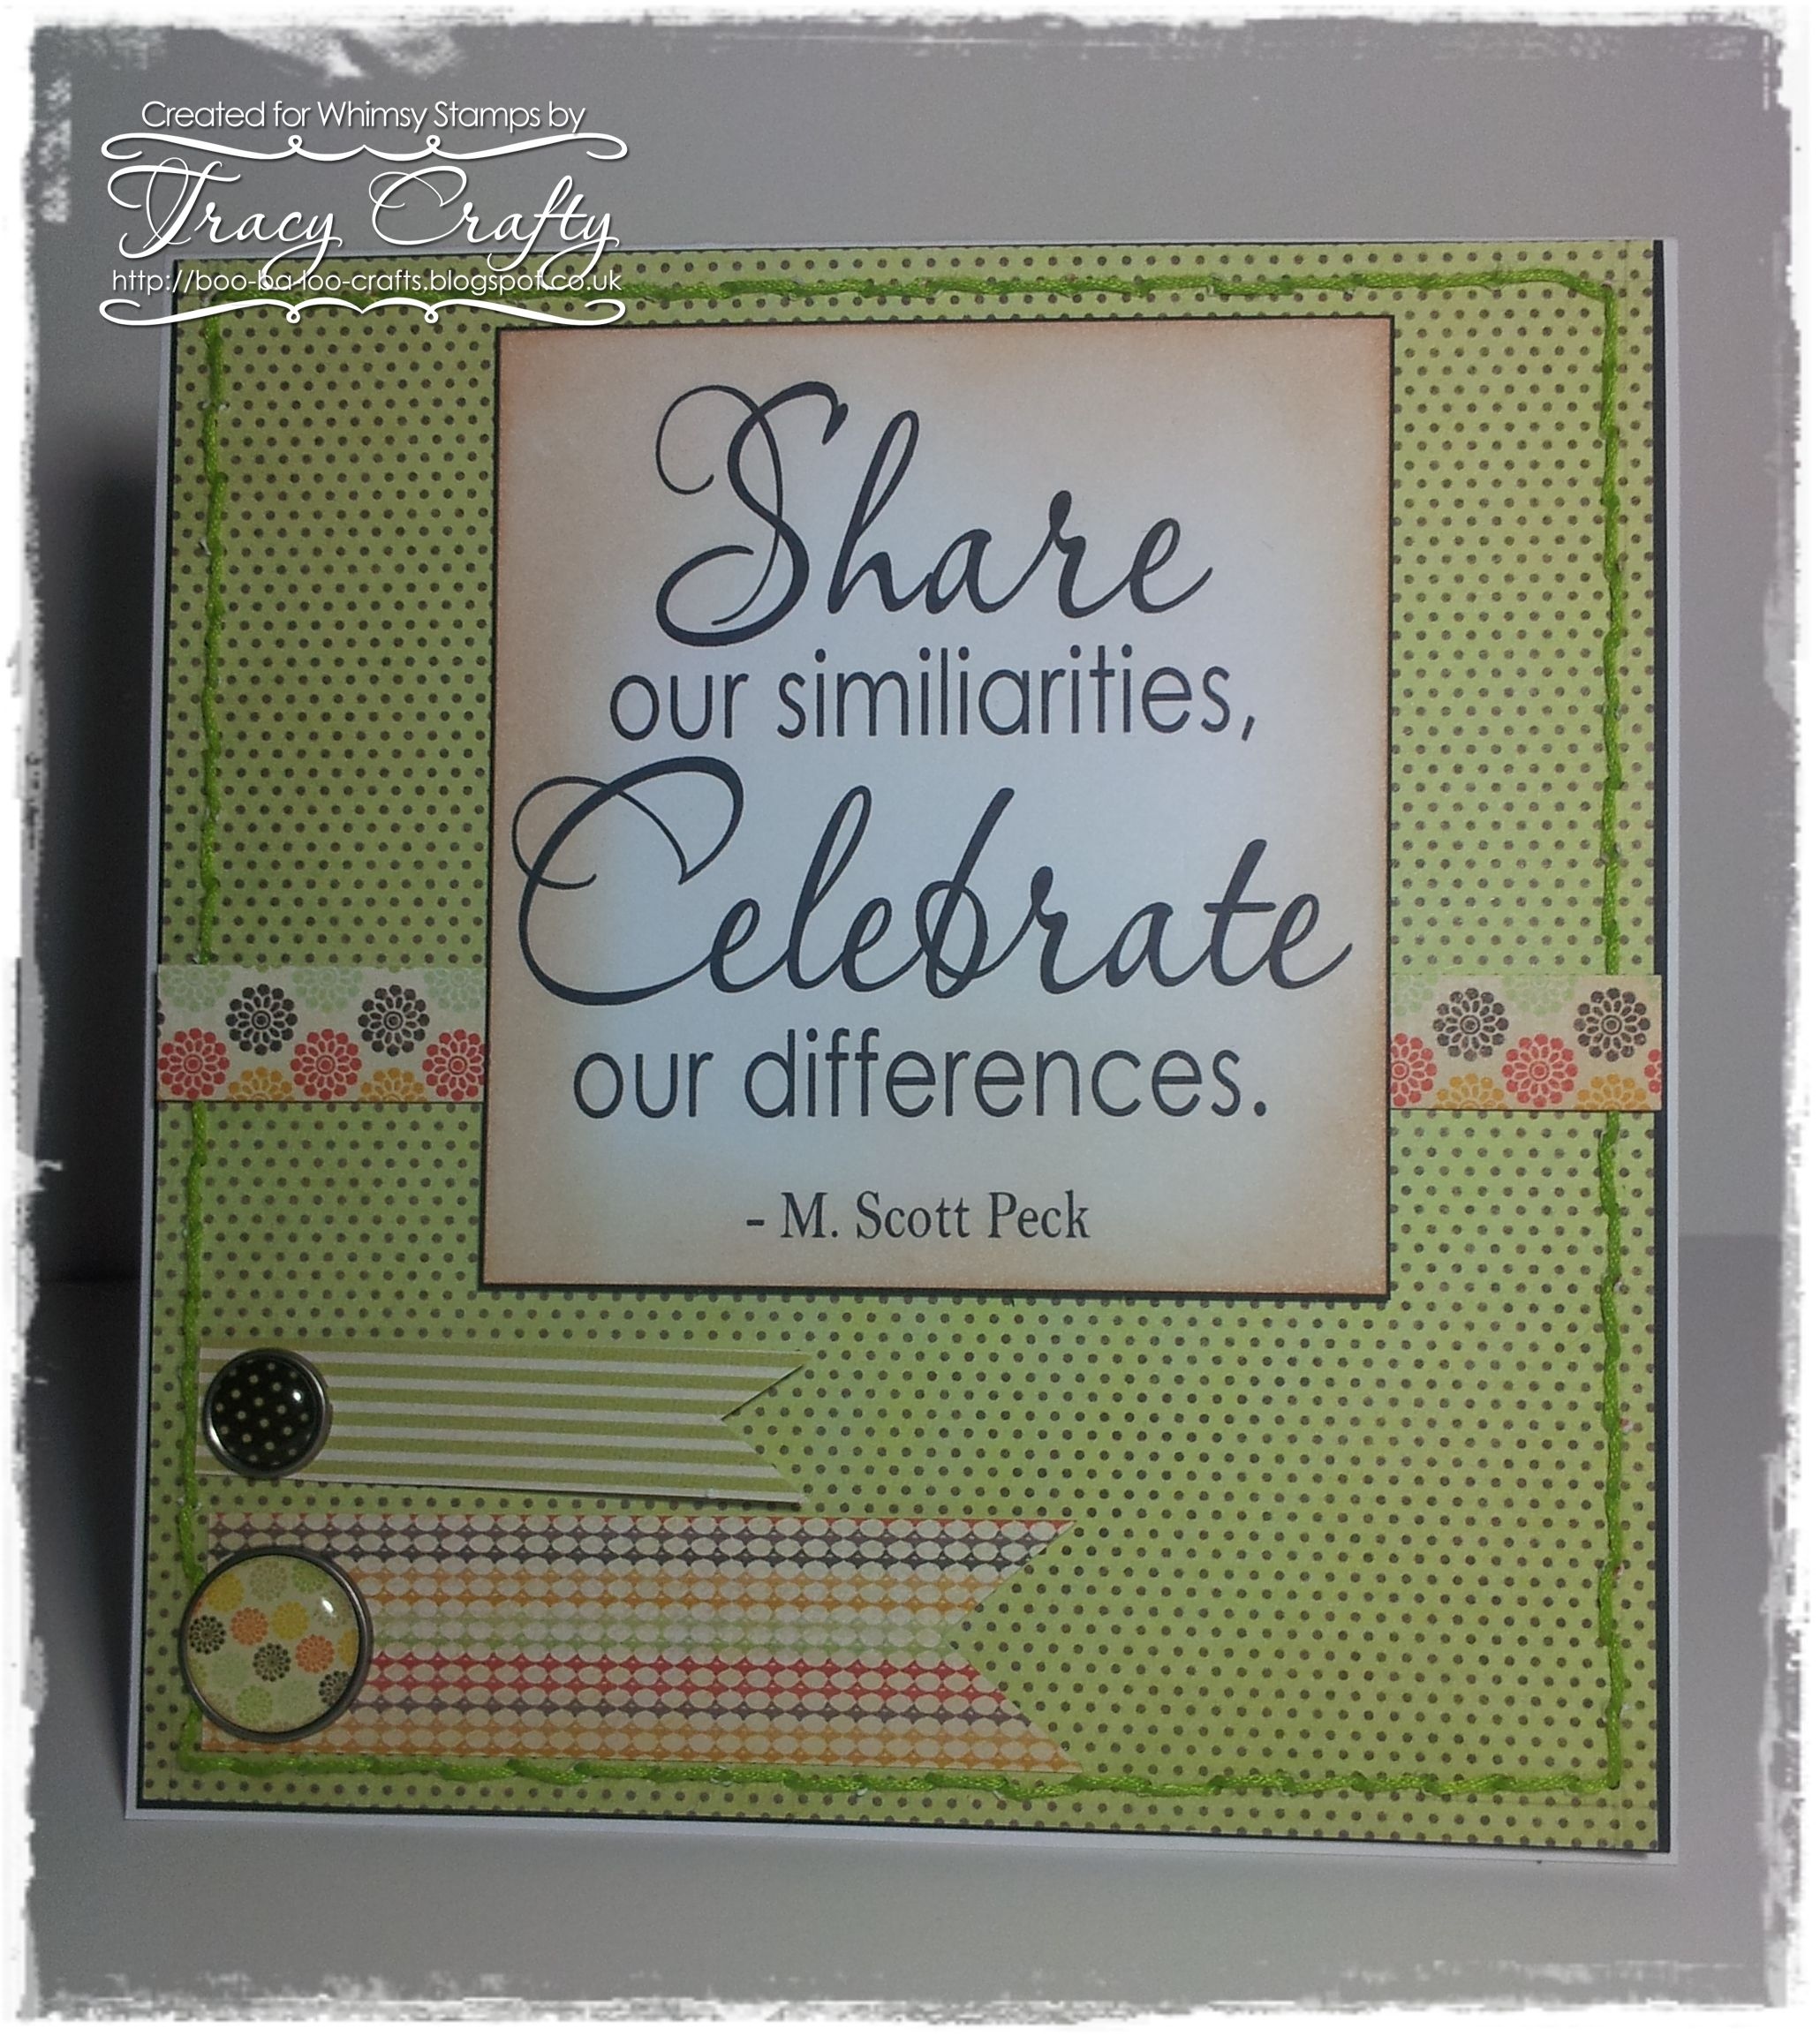 DT card for Whimsy http://www.whimsystamps.com/